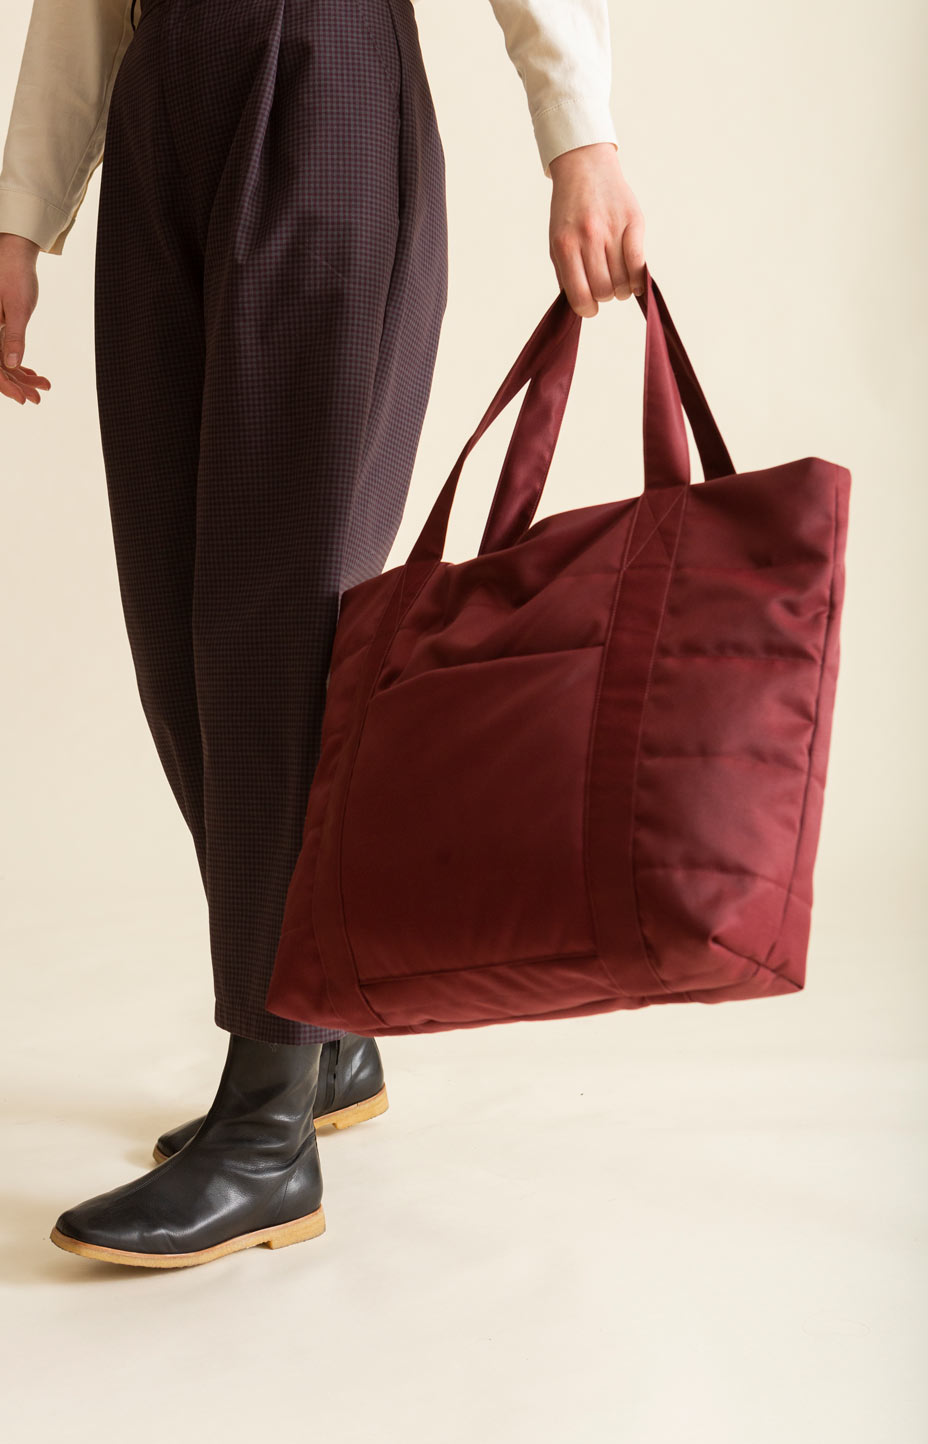 AW20 Hug Bag cabernet red - Accessories - TAUKO - TAUKODESIGN